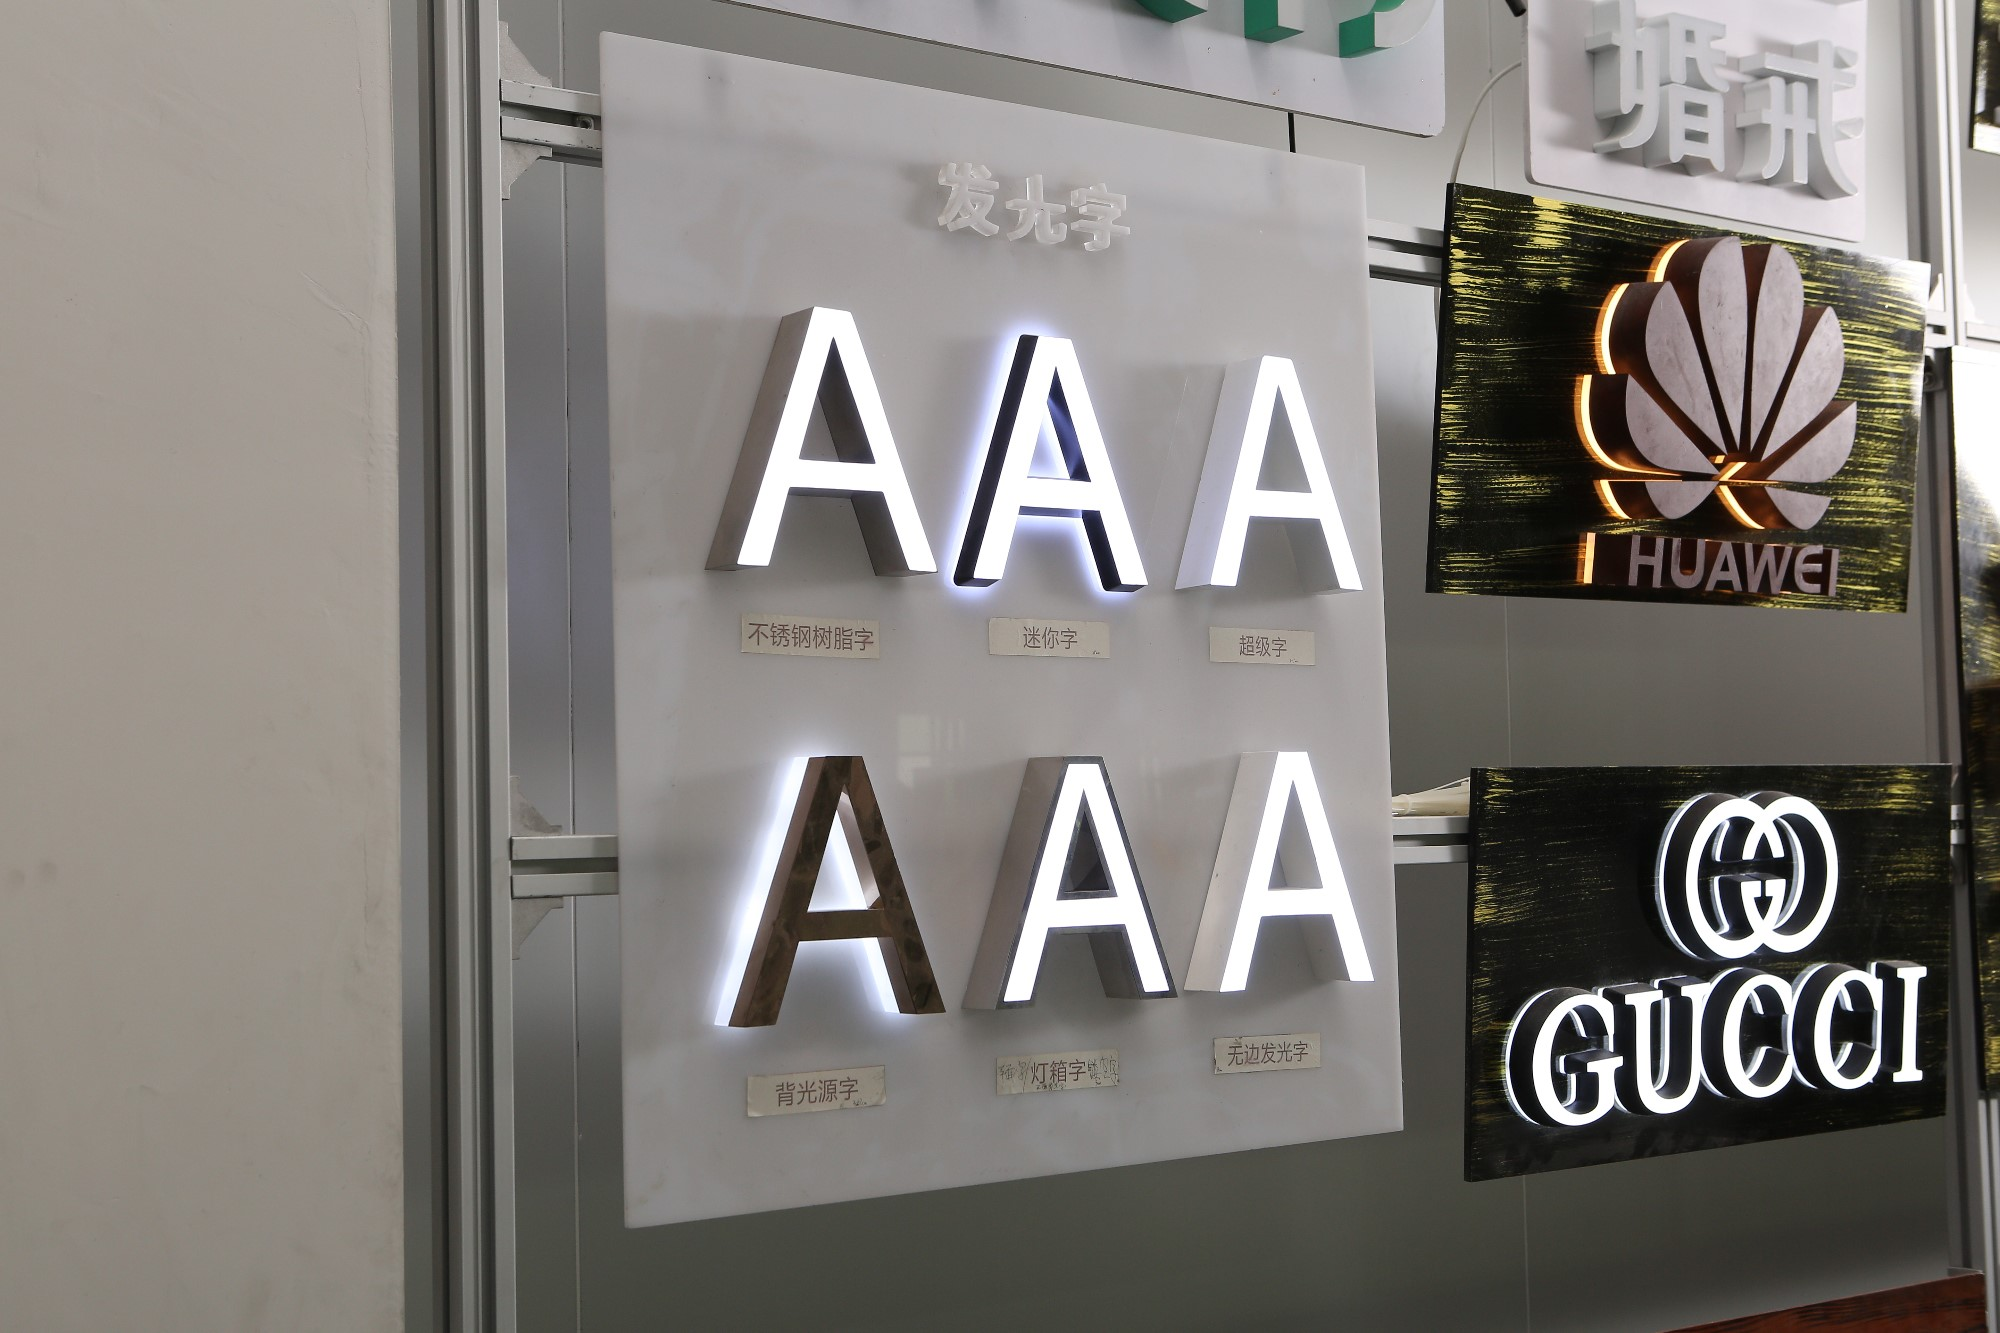 Punching Holes With Exposed Illuminated LED Sign Letter Manufacturers, Punching Holes With Exposed Illuminated LED Sign Letter Factory, Supply Punching Holes With Exposed Illuminated LED Sign Letter